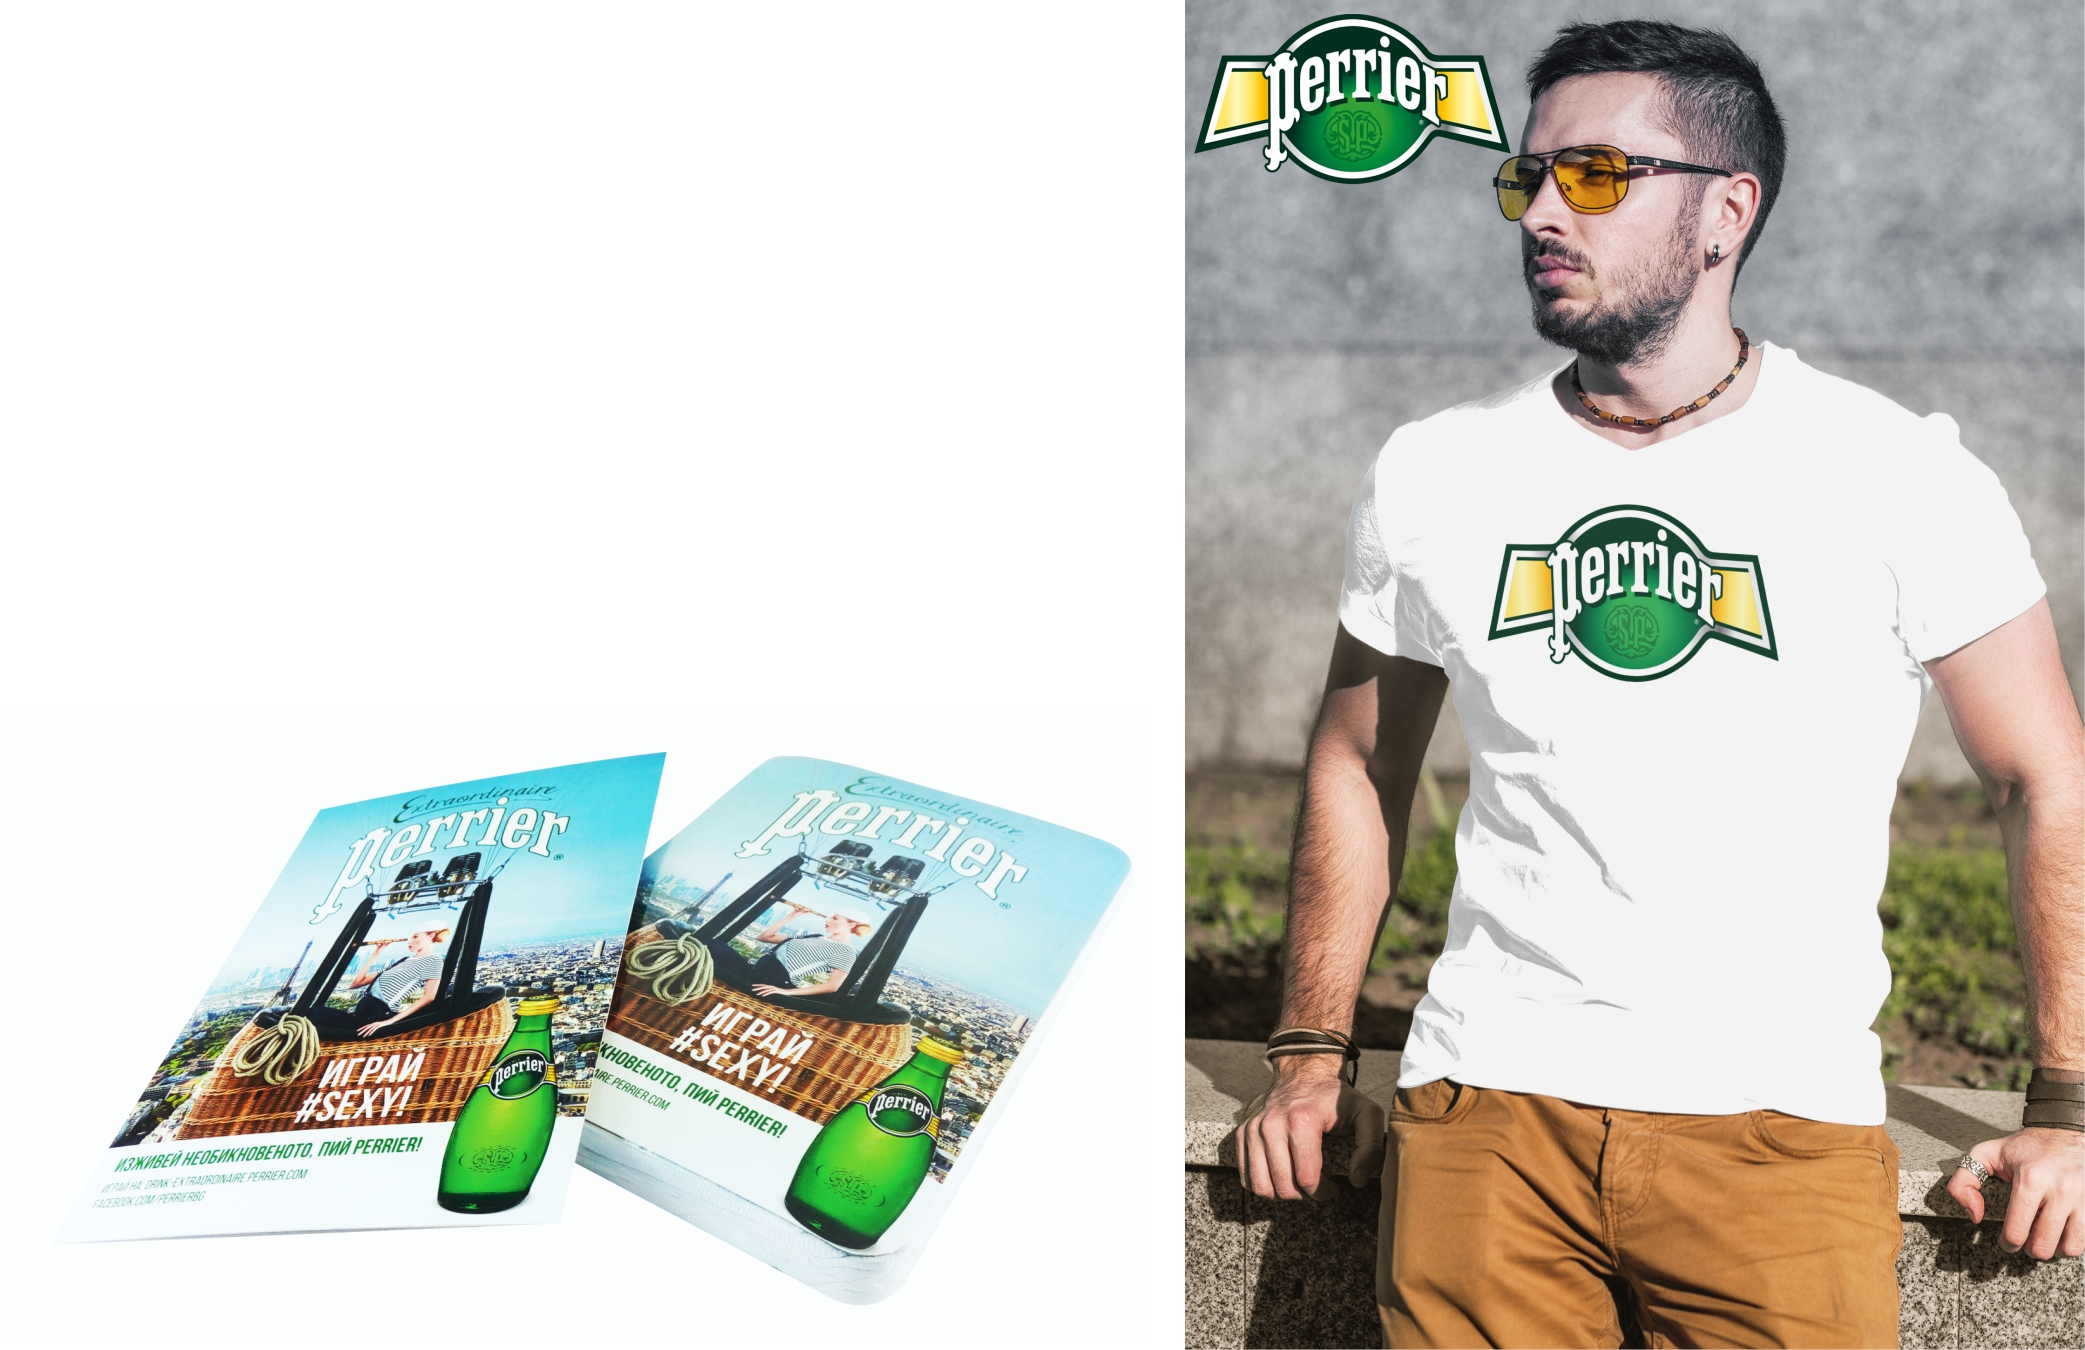 Perrier compressed T Shirt